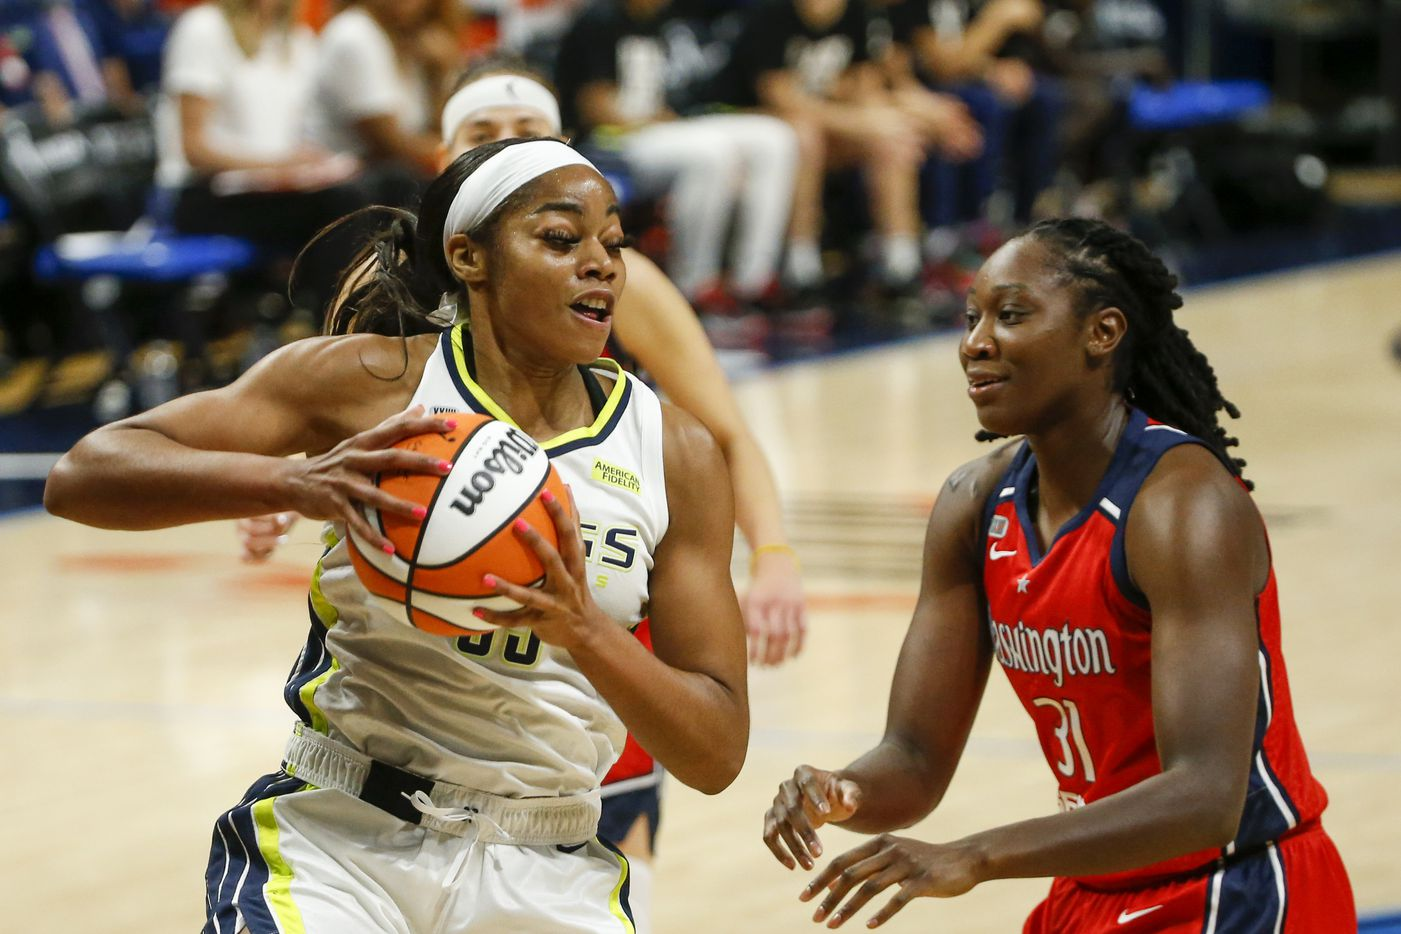 Dallas Wings forward/center Charli Collier (35) secures a rebound in front of Washington Mystics center Tina Charles (31) during the first quarter at College Park Center on Saturday, June 26, 2021, in Arlington. (Elias Valverde II/The Dallas Morning News)